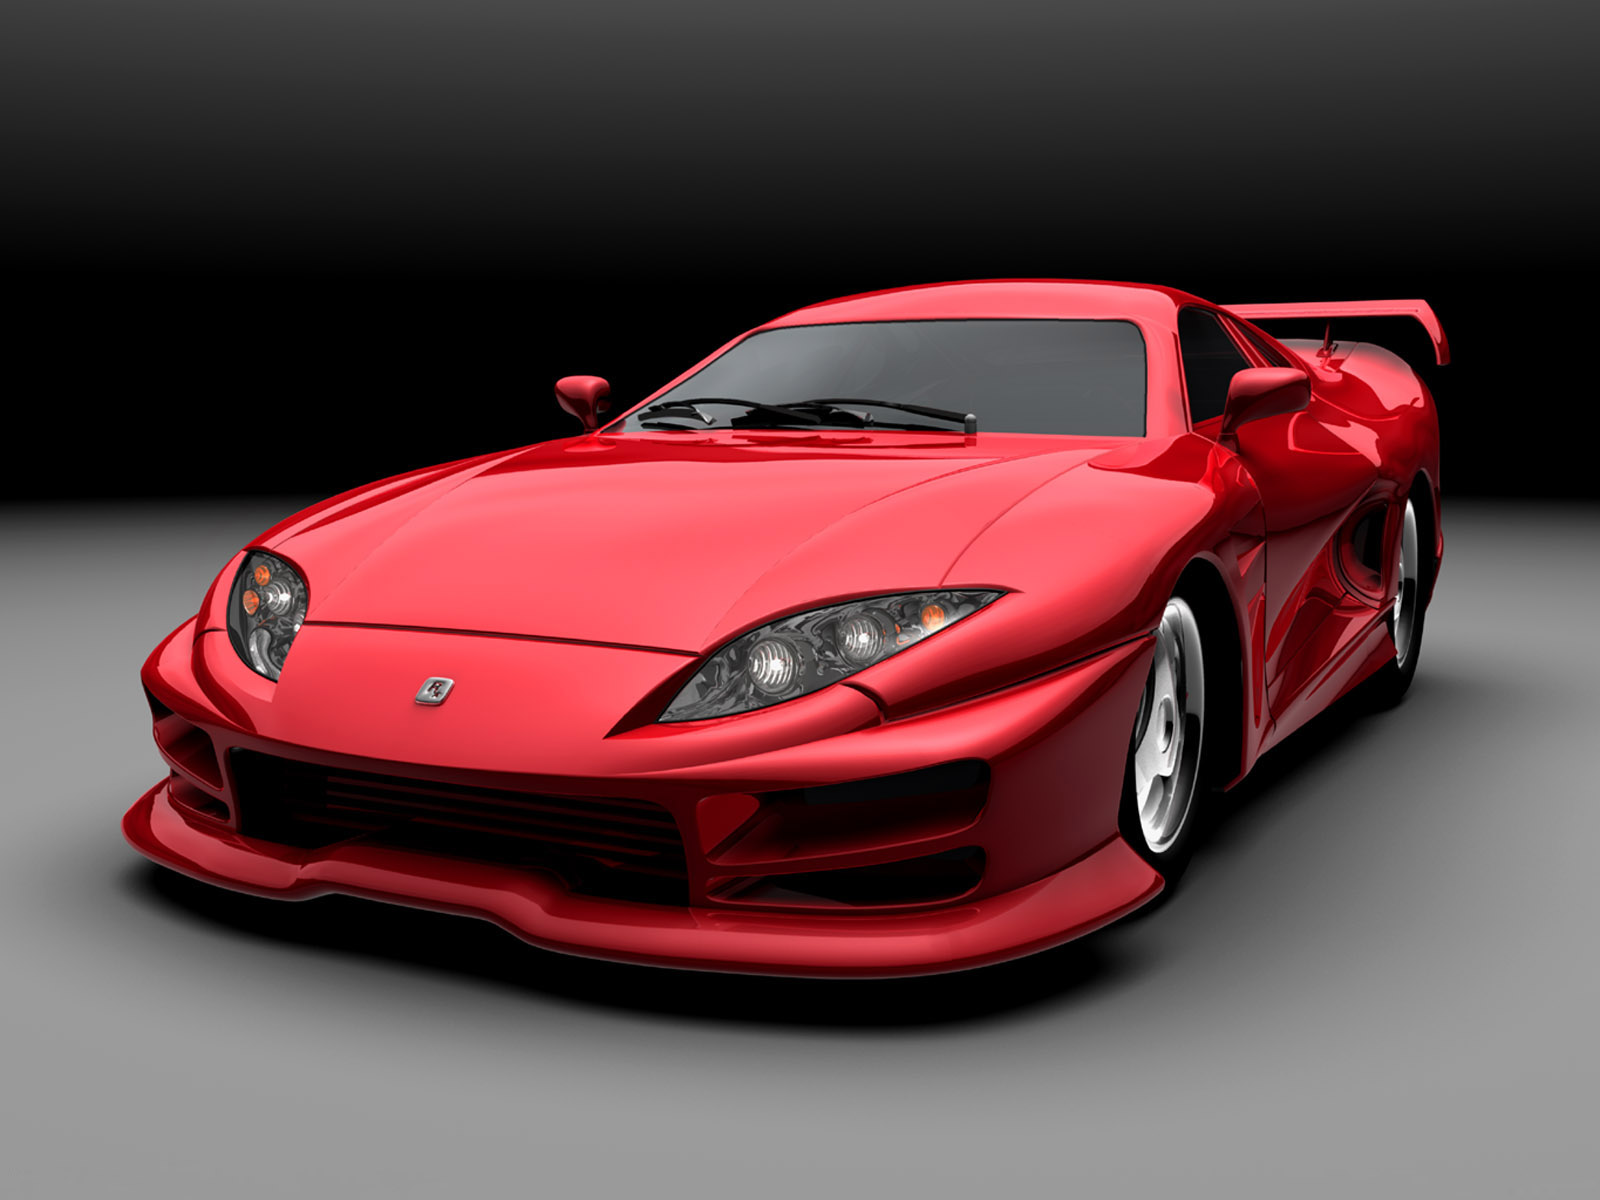 Car, About Car, Which Car, Sport Car, New Cars, Wallpapers